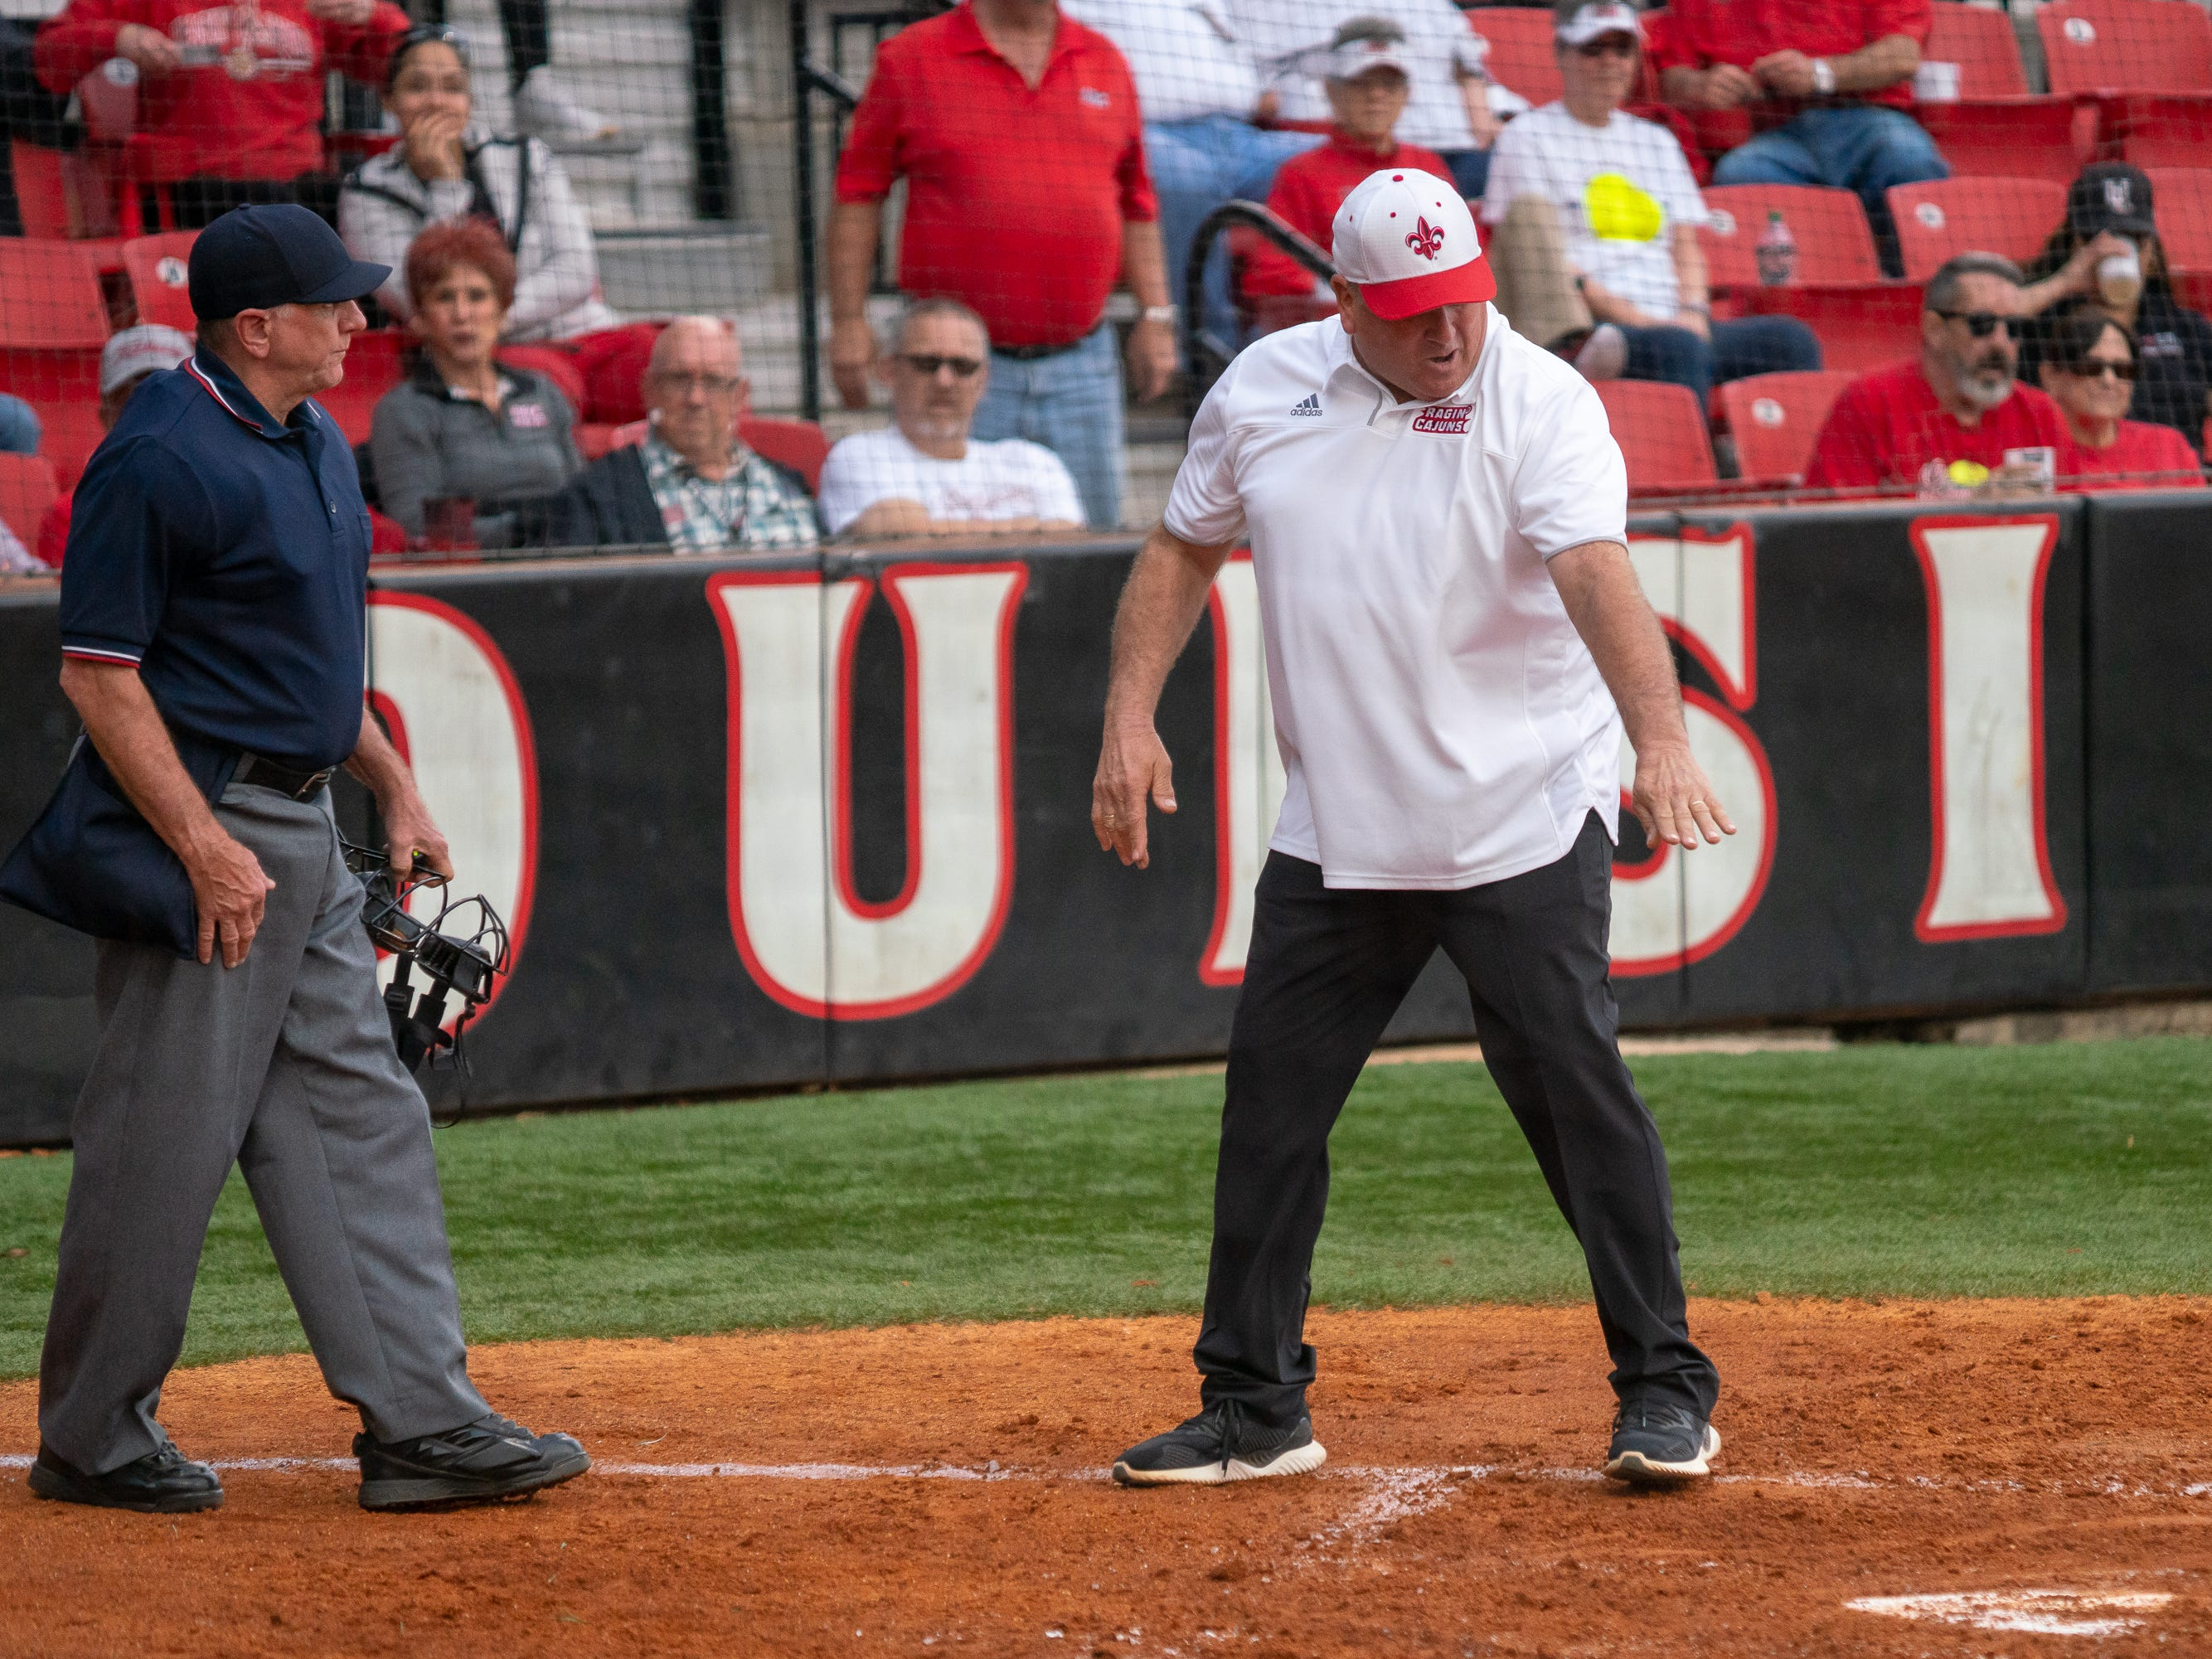 UL's head softball coach Gerry Glasco questions an official's call at home plate as the Ragin' Cajuns play against the California Golden Bears at Lamson Park on February 11, 2019.